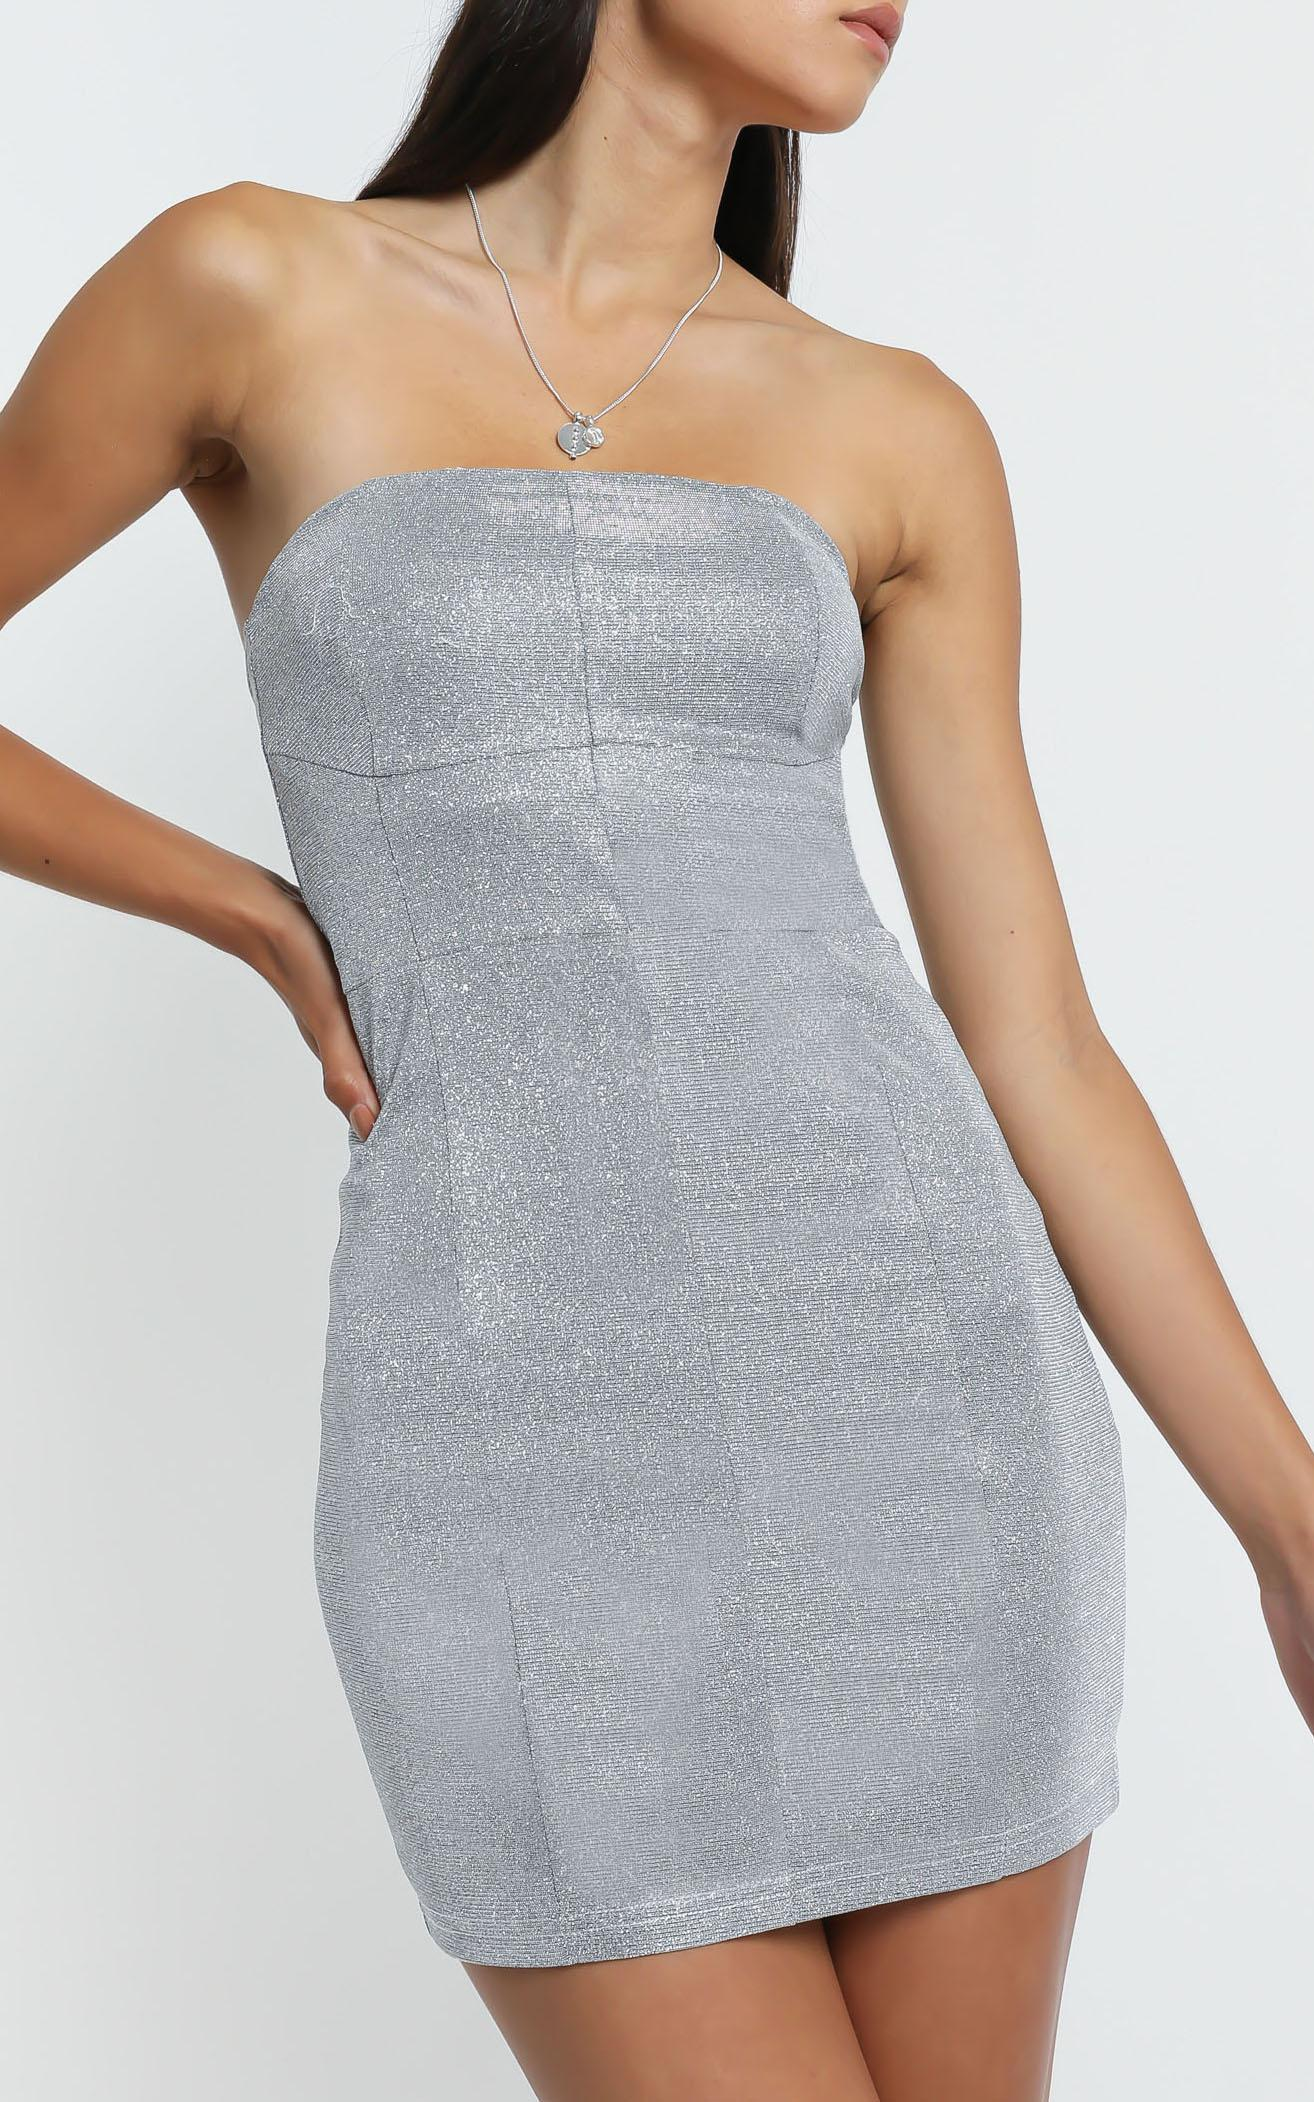 Diva Dress in Silver - 6 (XS), Silver, hi-res image number null